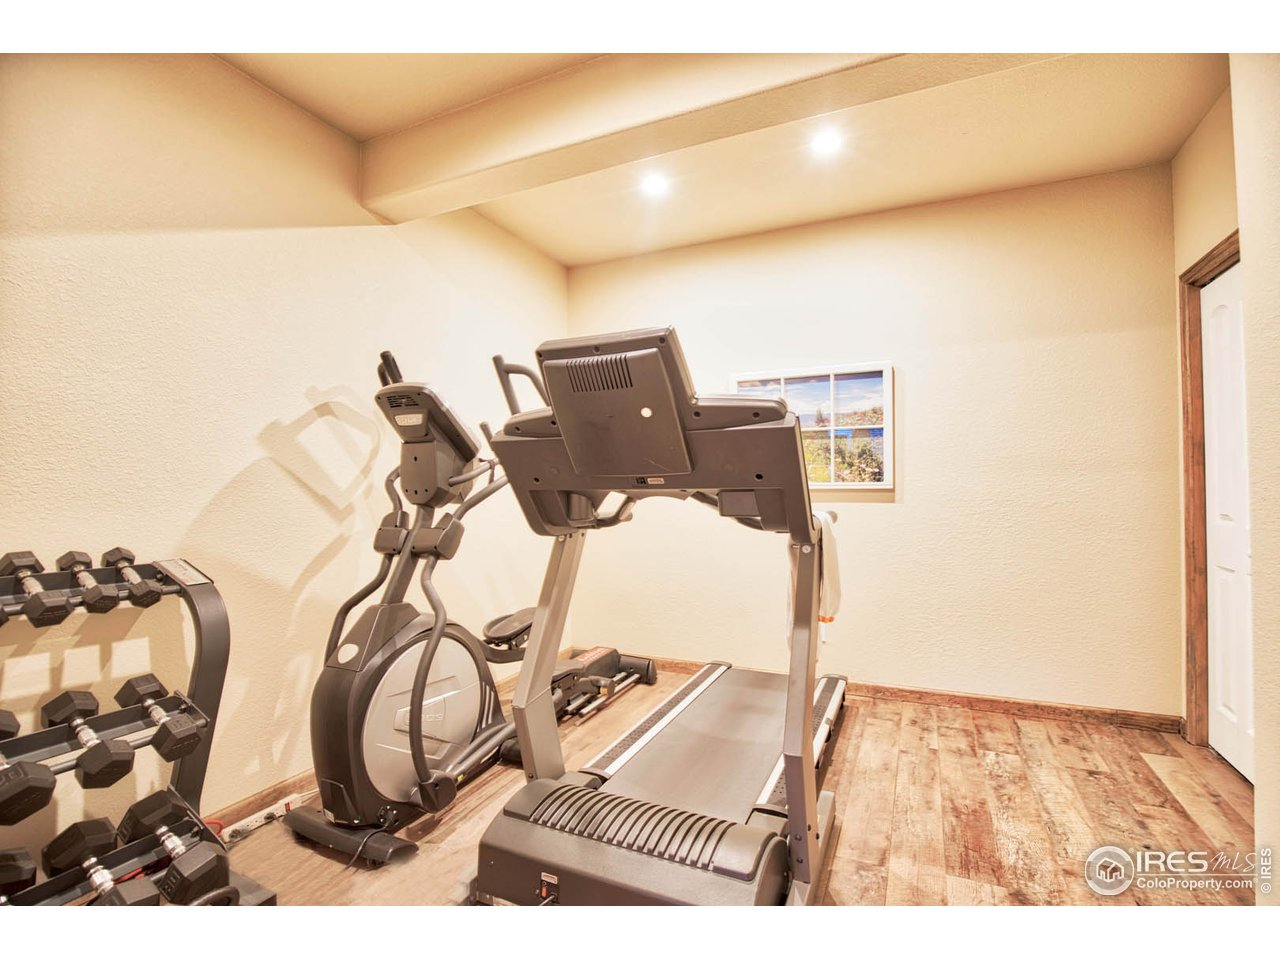 Basement workout room